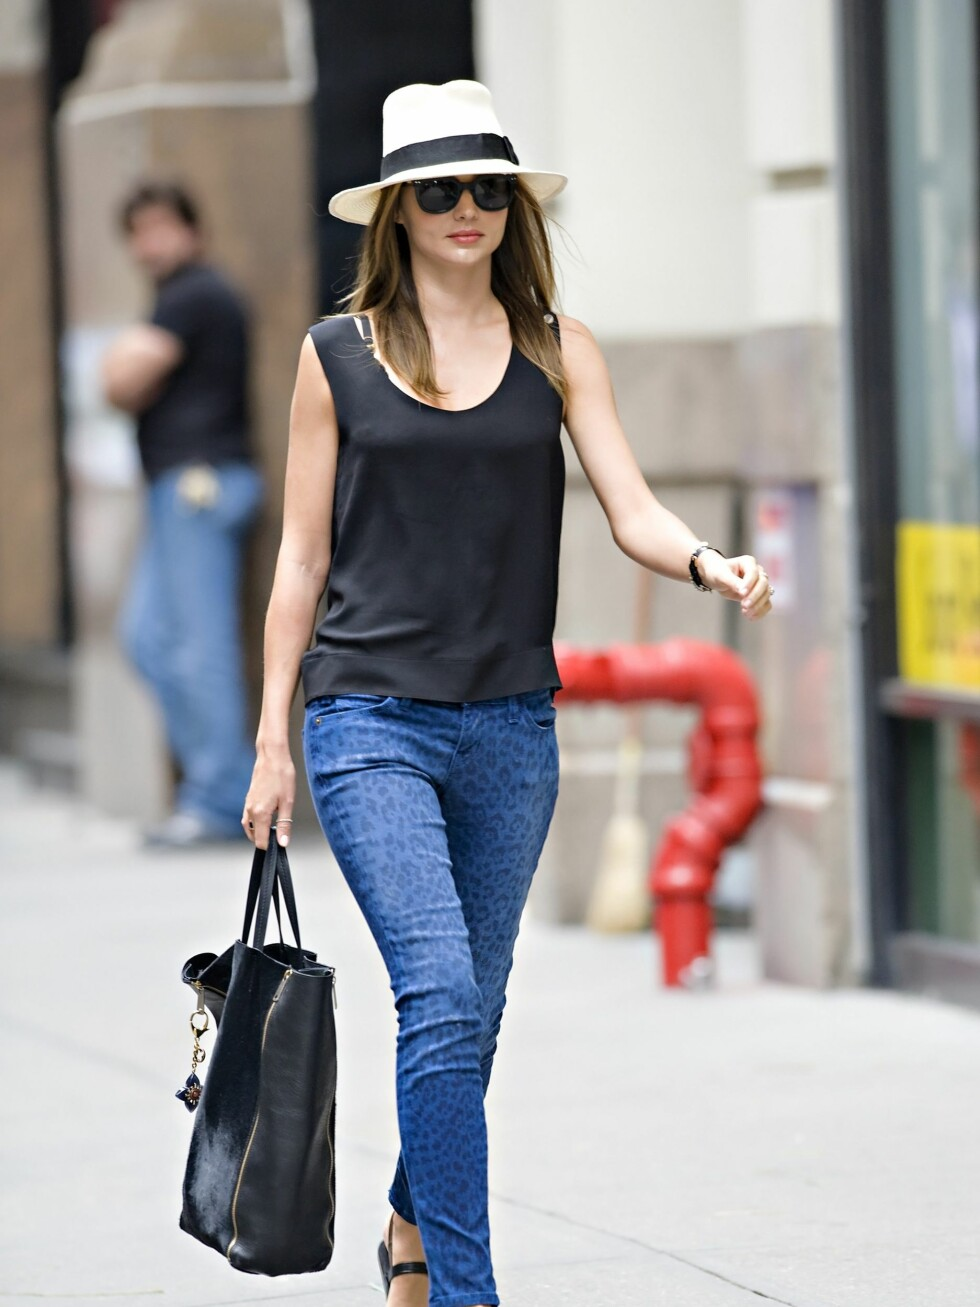 Miranda Kerr seen wearing bright blue leopard-print jeans and white fedora while returning from a trip to the spa in NYC.  Kerr was wearing bright blue leopard-print skinny trousers by Current/Elliot, paired with black strappy sandals, a black silk tank top, large dark retro sunglasses and a black leather tote bag.  Pictured: Miranda Kerr  Ref: SPL409977  260612   Picture by: Jason Webber / Splash News  Splash News and Pictures Los Angeles:310-821-2666 New York:212-619-2666 London:870-934-2666 photodesk@splashnews.com  *** Local Caption *** World Rights Foto: All Over Press